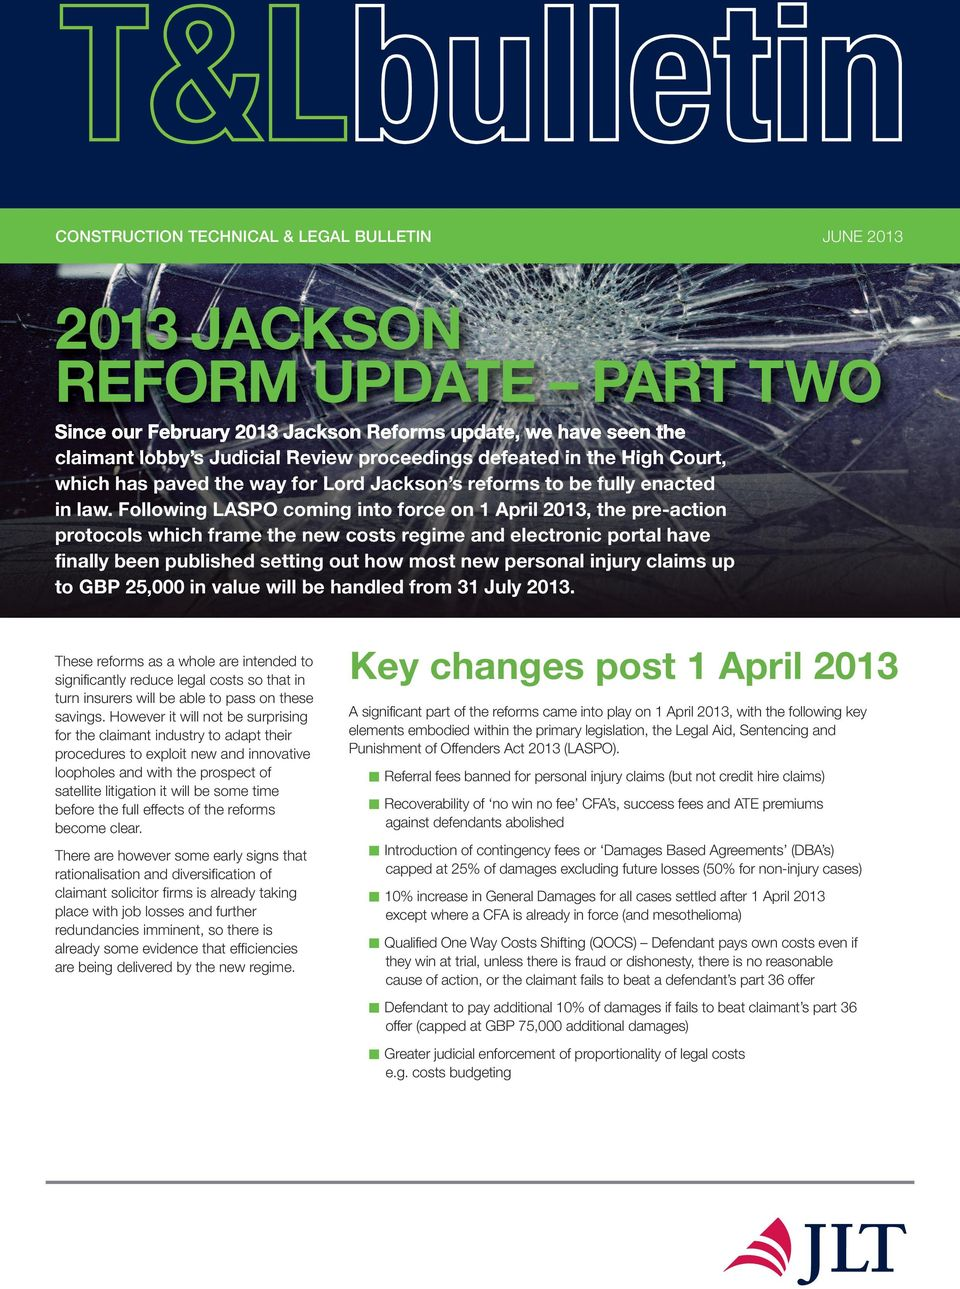 Following LASPO coming into force on 1 April 2013, the pre-action protocols which frame the new costs regime and electronic portal have finally been published setting out how most new personal injury